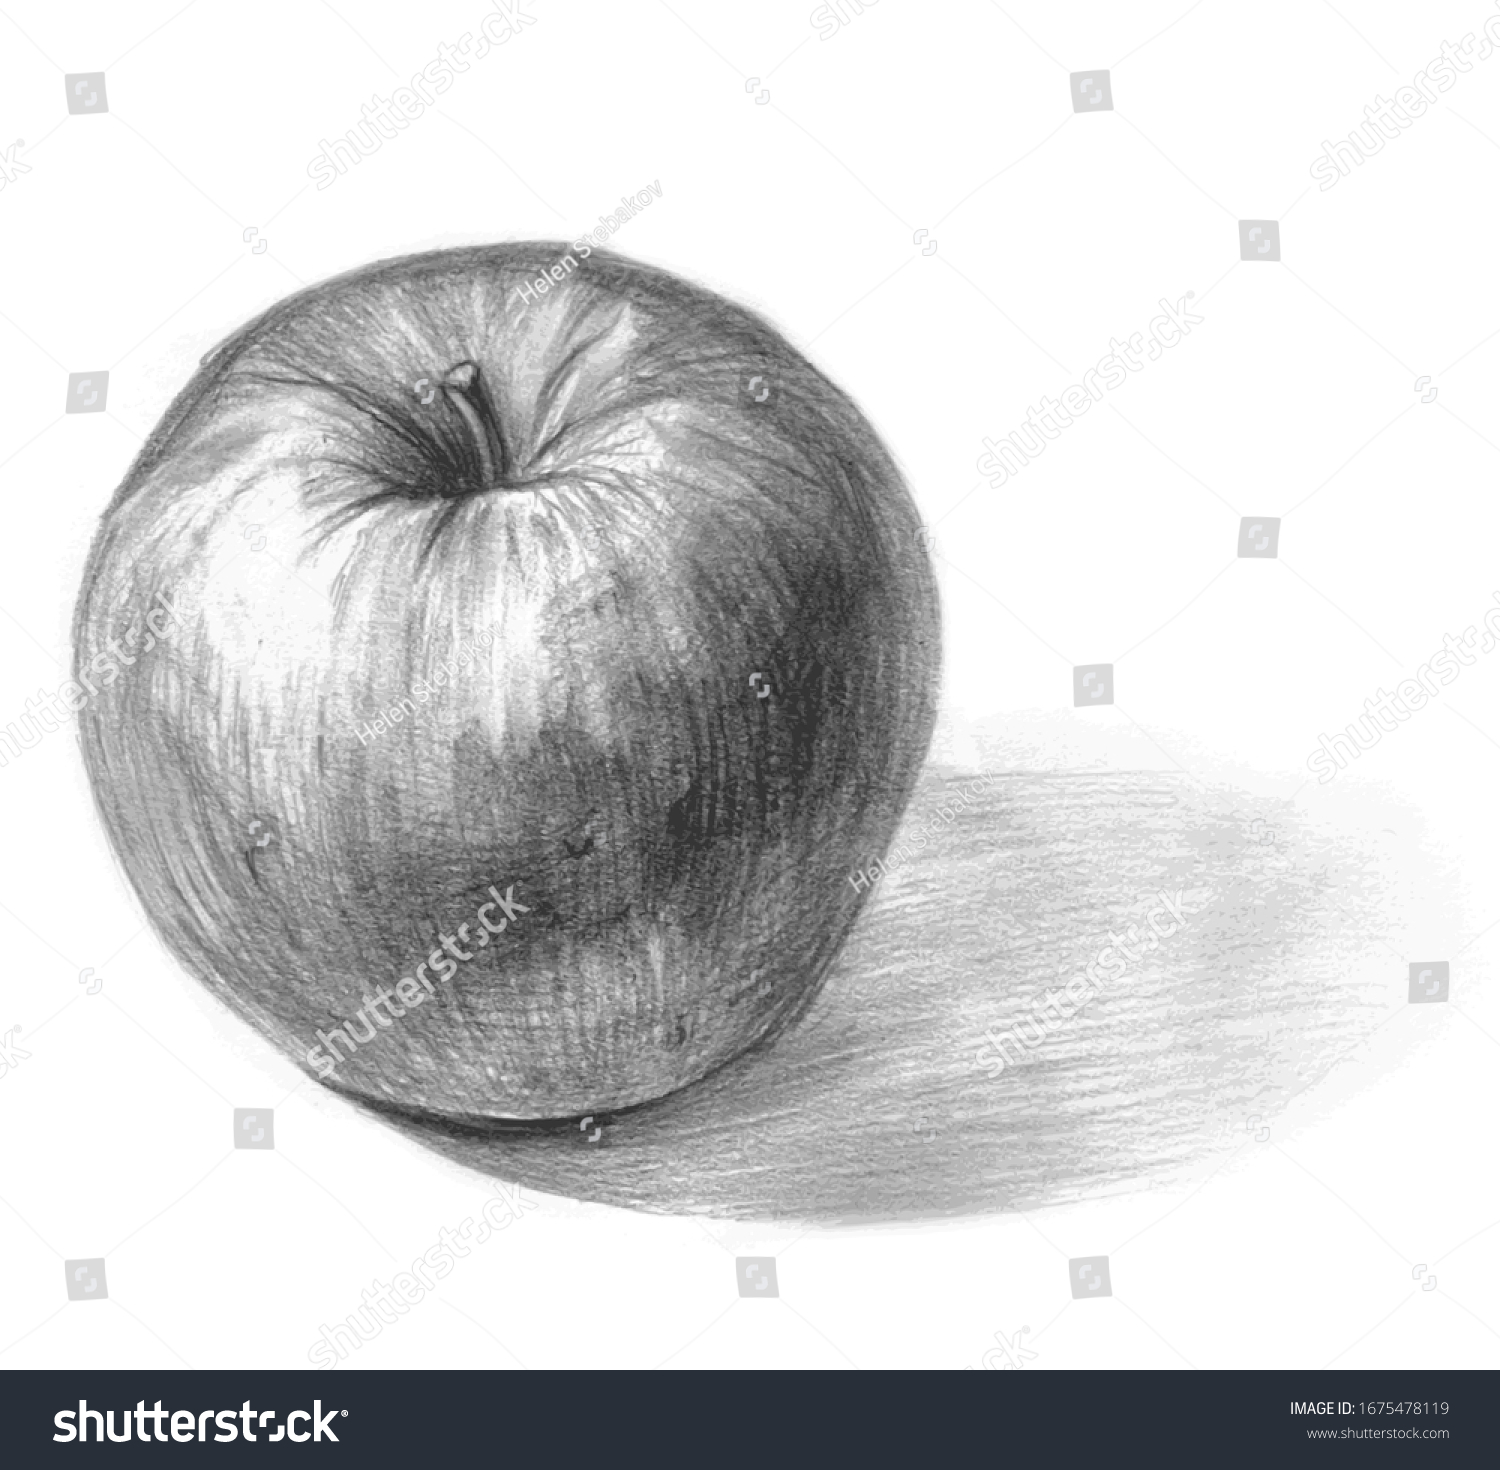 Apple Pencil Sketch On White Background Stock Vector Royalty Free 1675478119